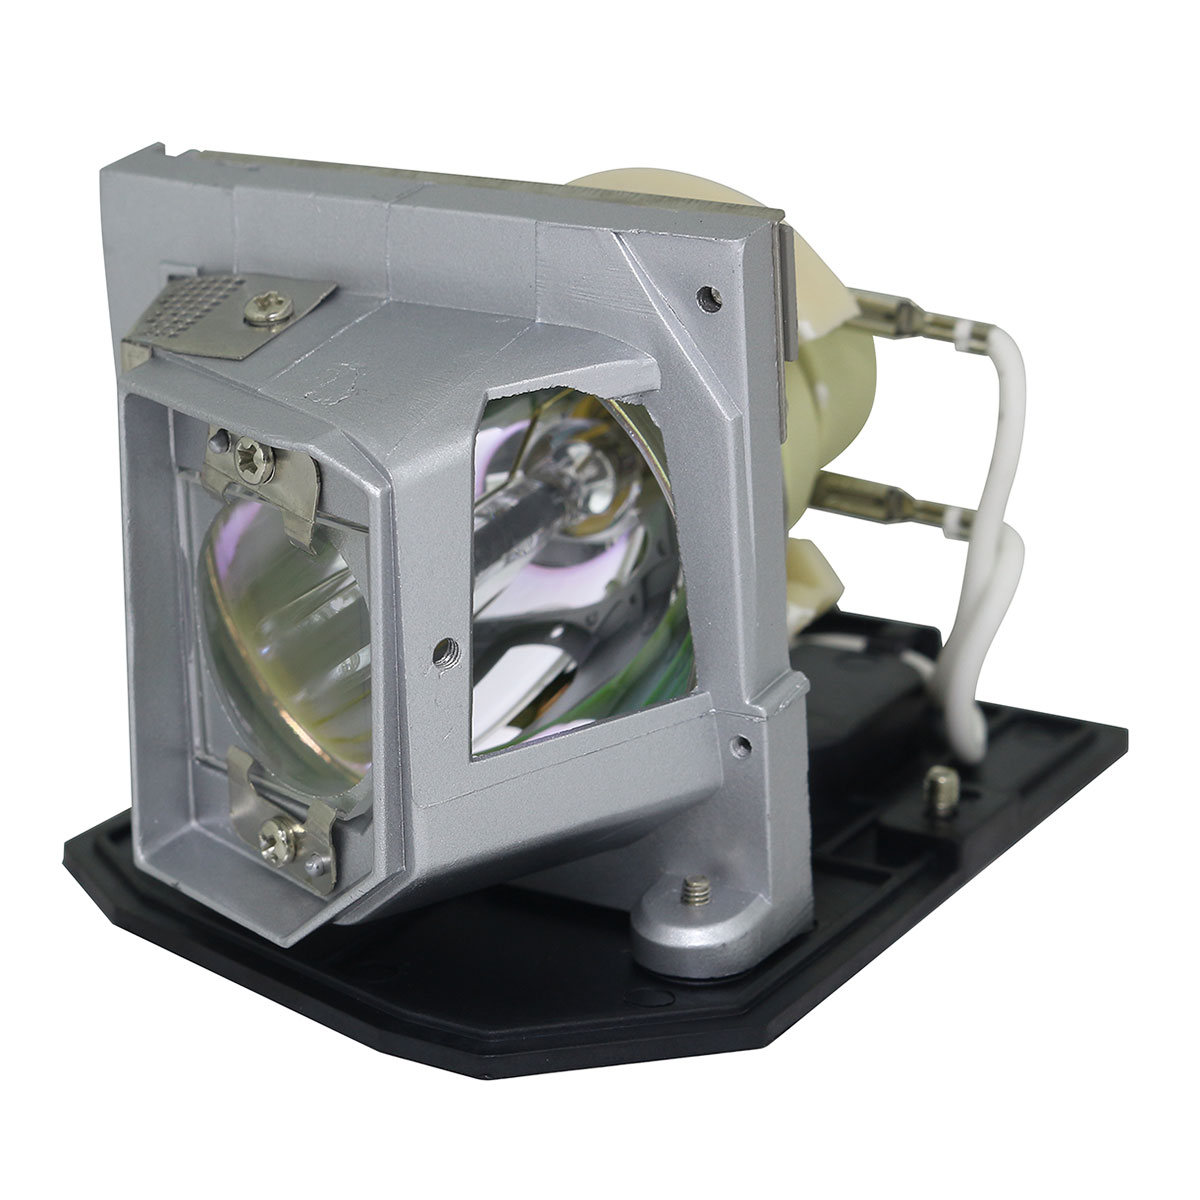 Original Phoenix Projector Lamp Replacement with Housing for Acer PH530